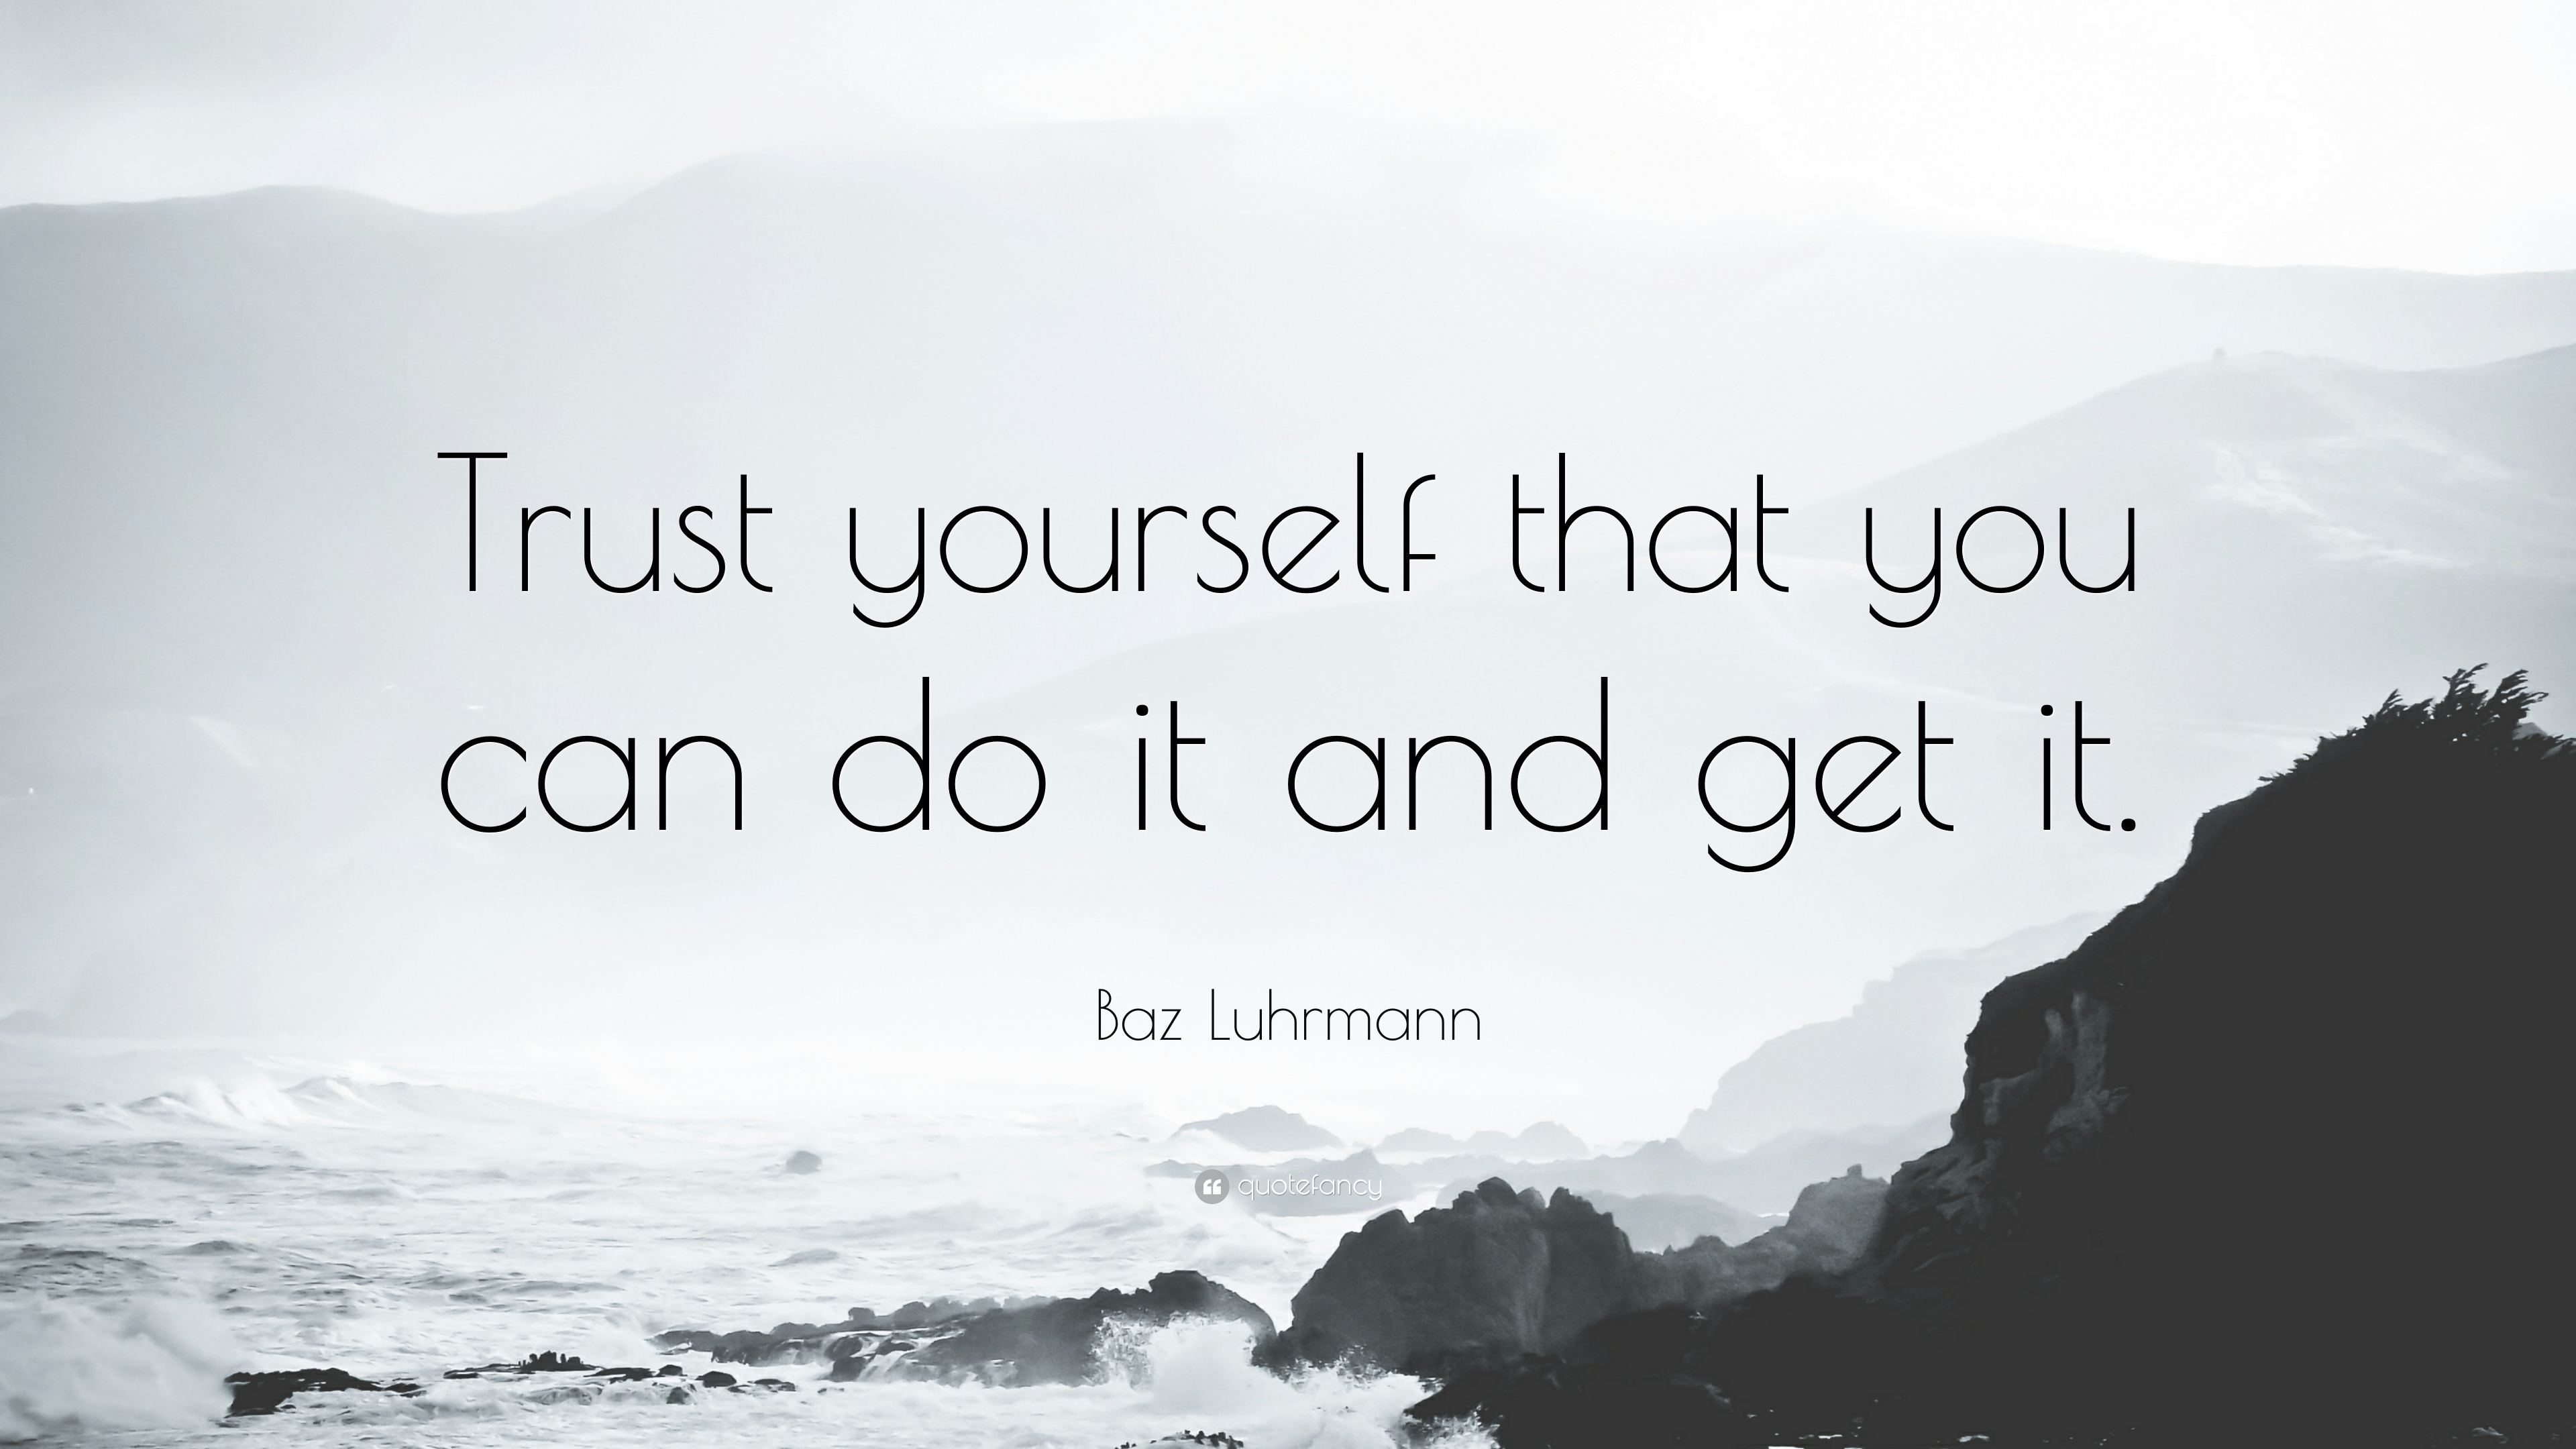 Baz luhrmann quote trust yourself that you can do it and get it baz luhrmann quote trust yourself that you can do it and get it solutioingenieria Images